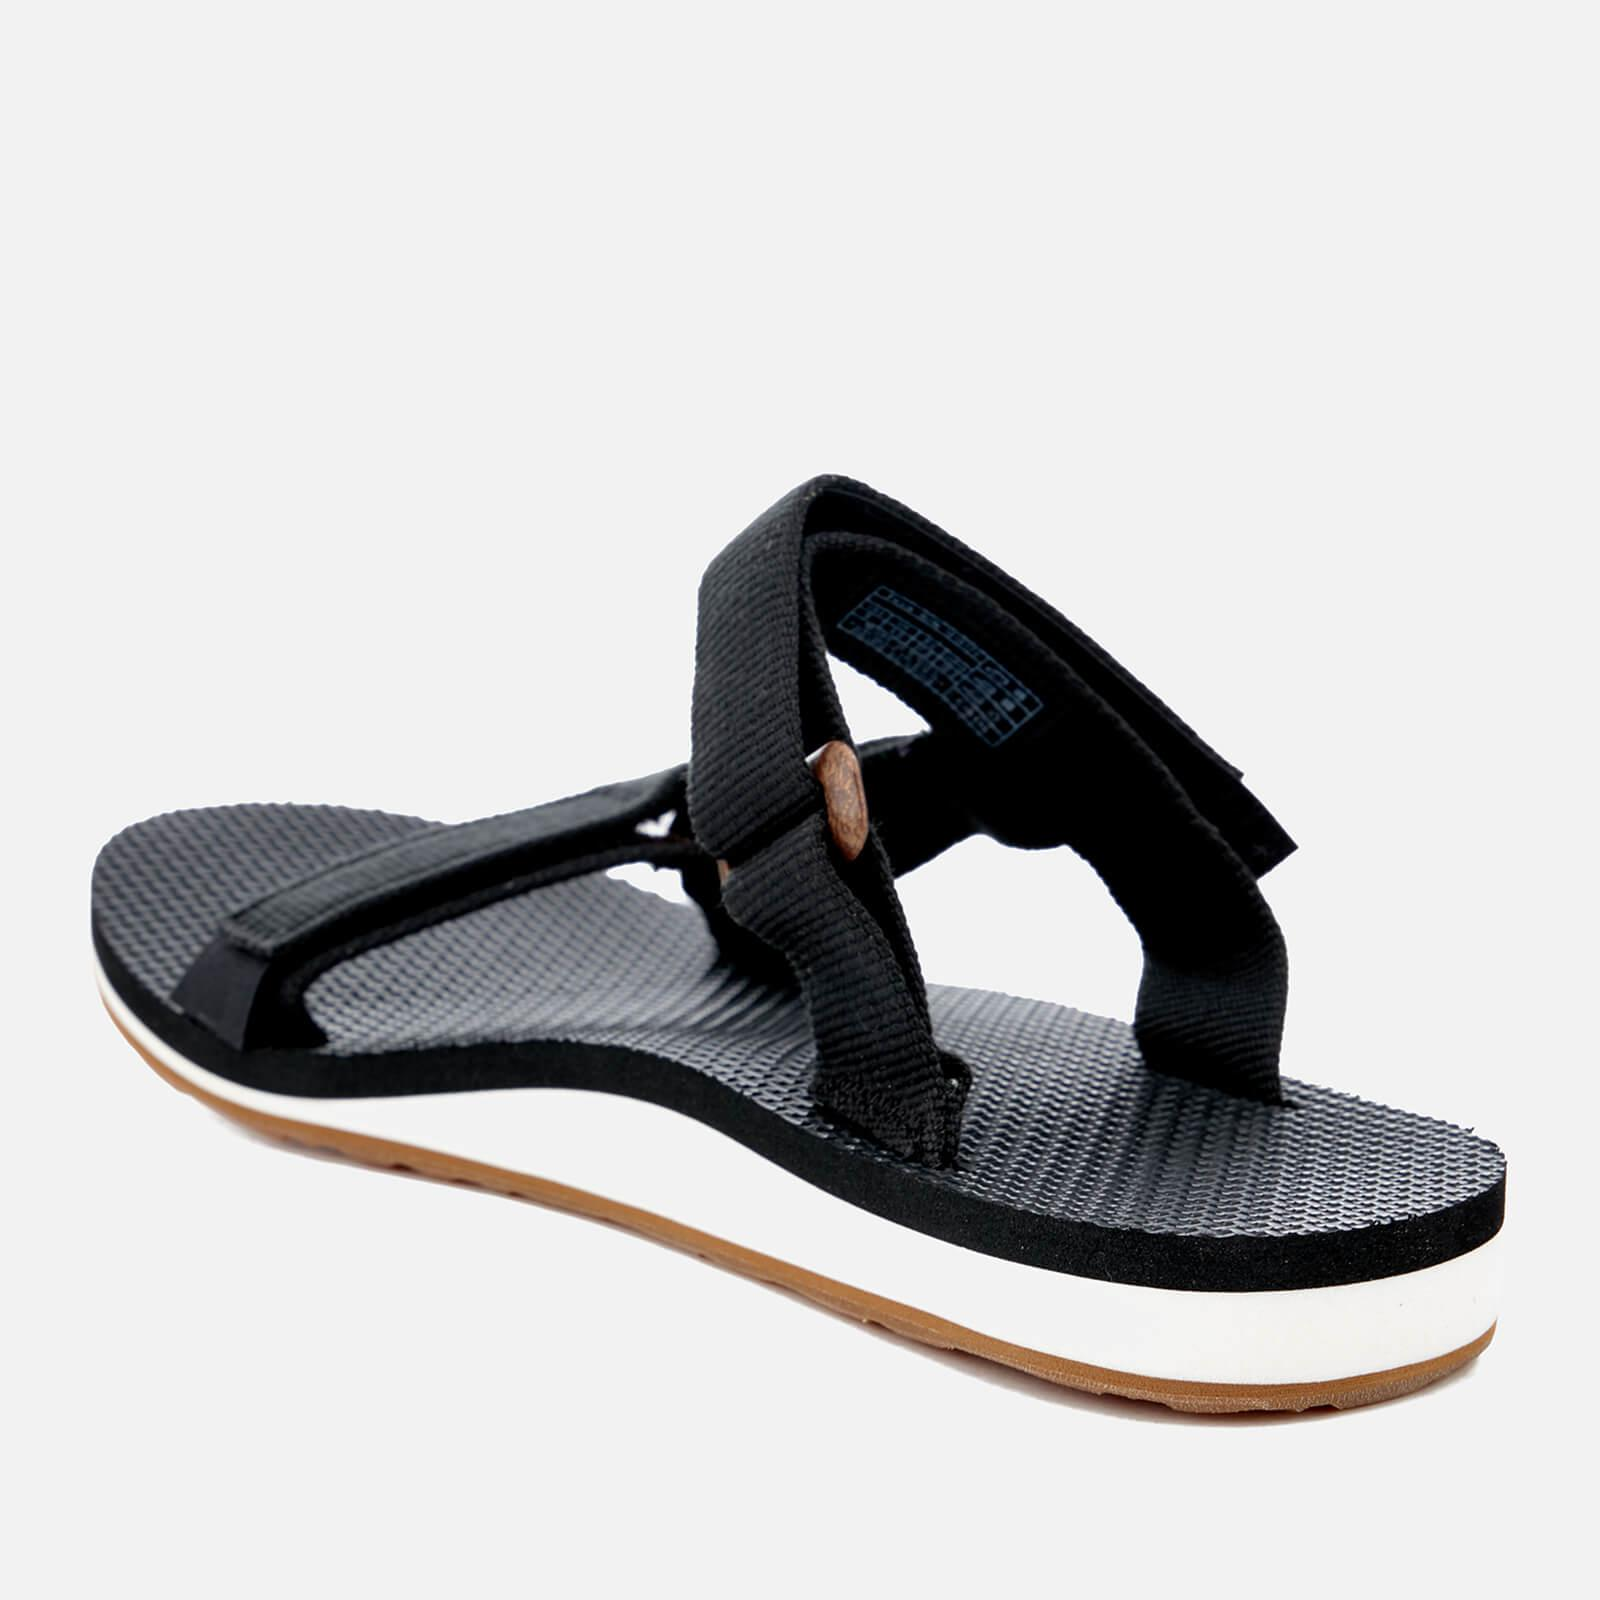 ad0993ce8b4 Teva - Black Universal Slide Sandals - Lyst. View fullscreen